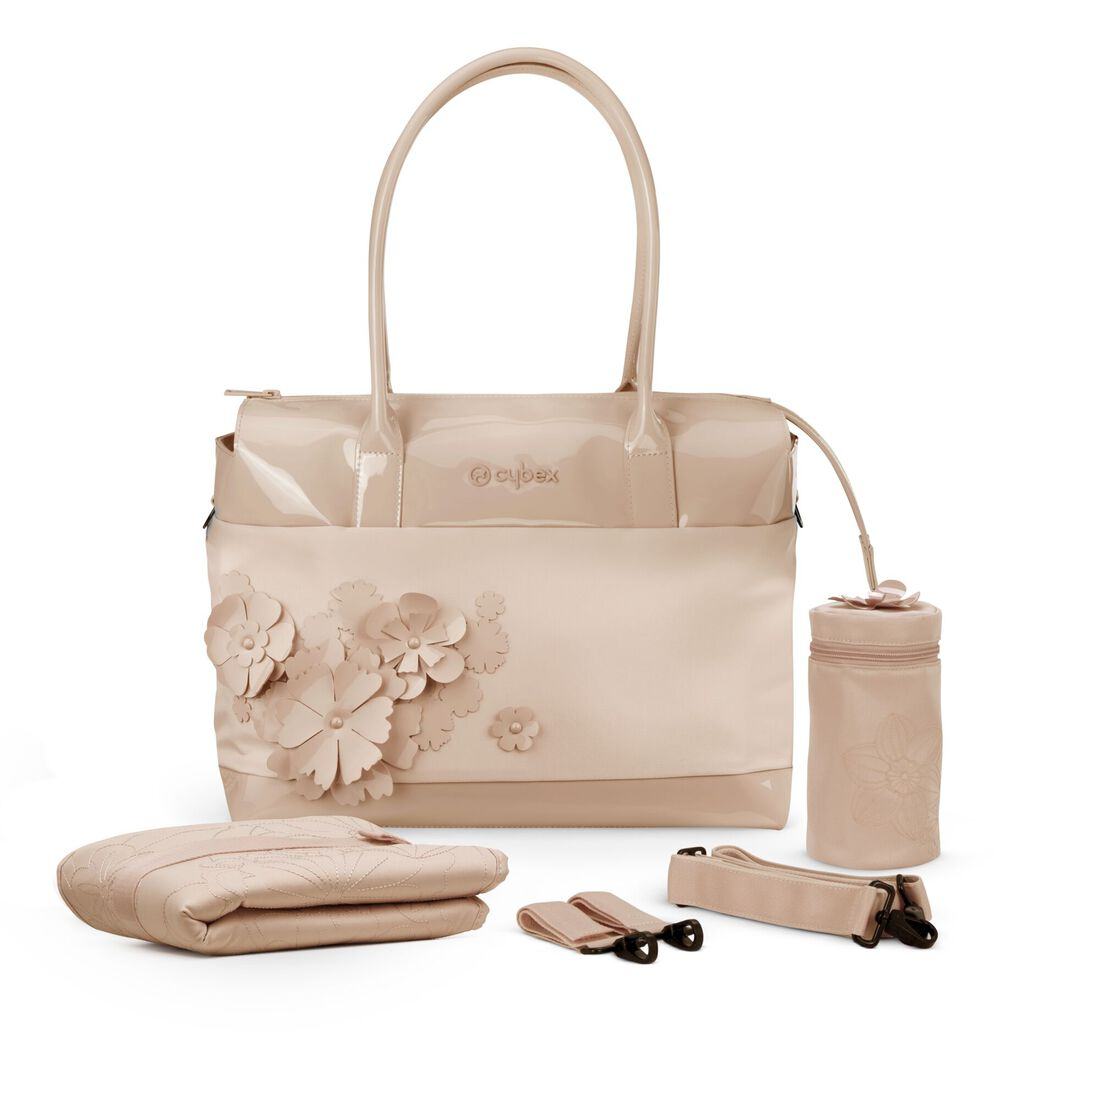 CYBEX Changing Bag Simply Flowers - Nude Beige in Nude Beige large image number 3